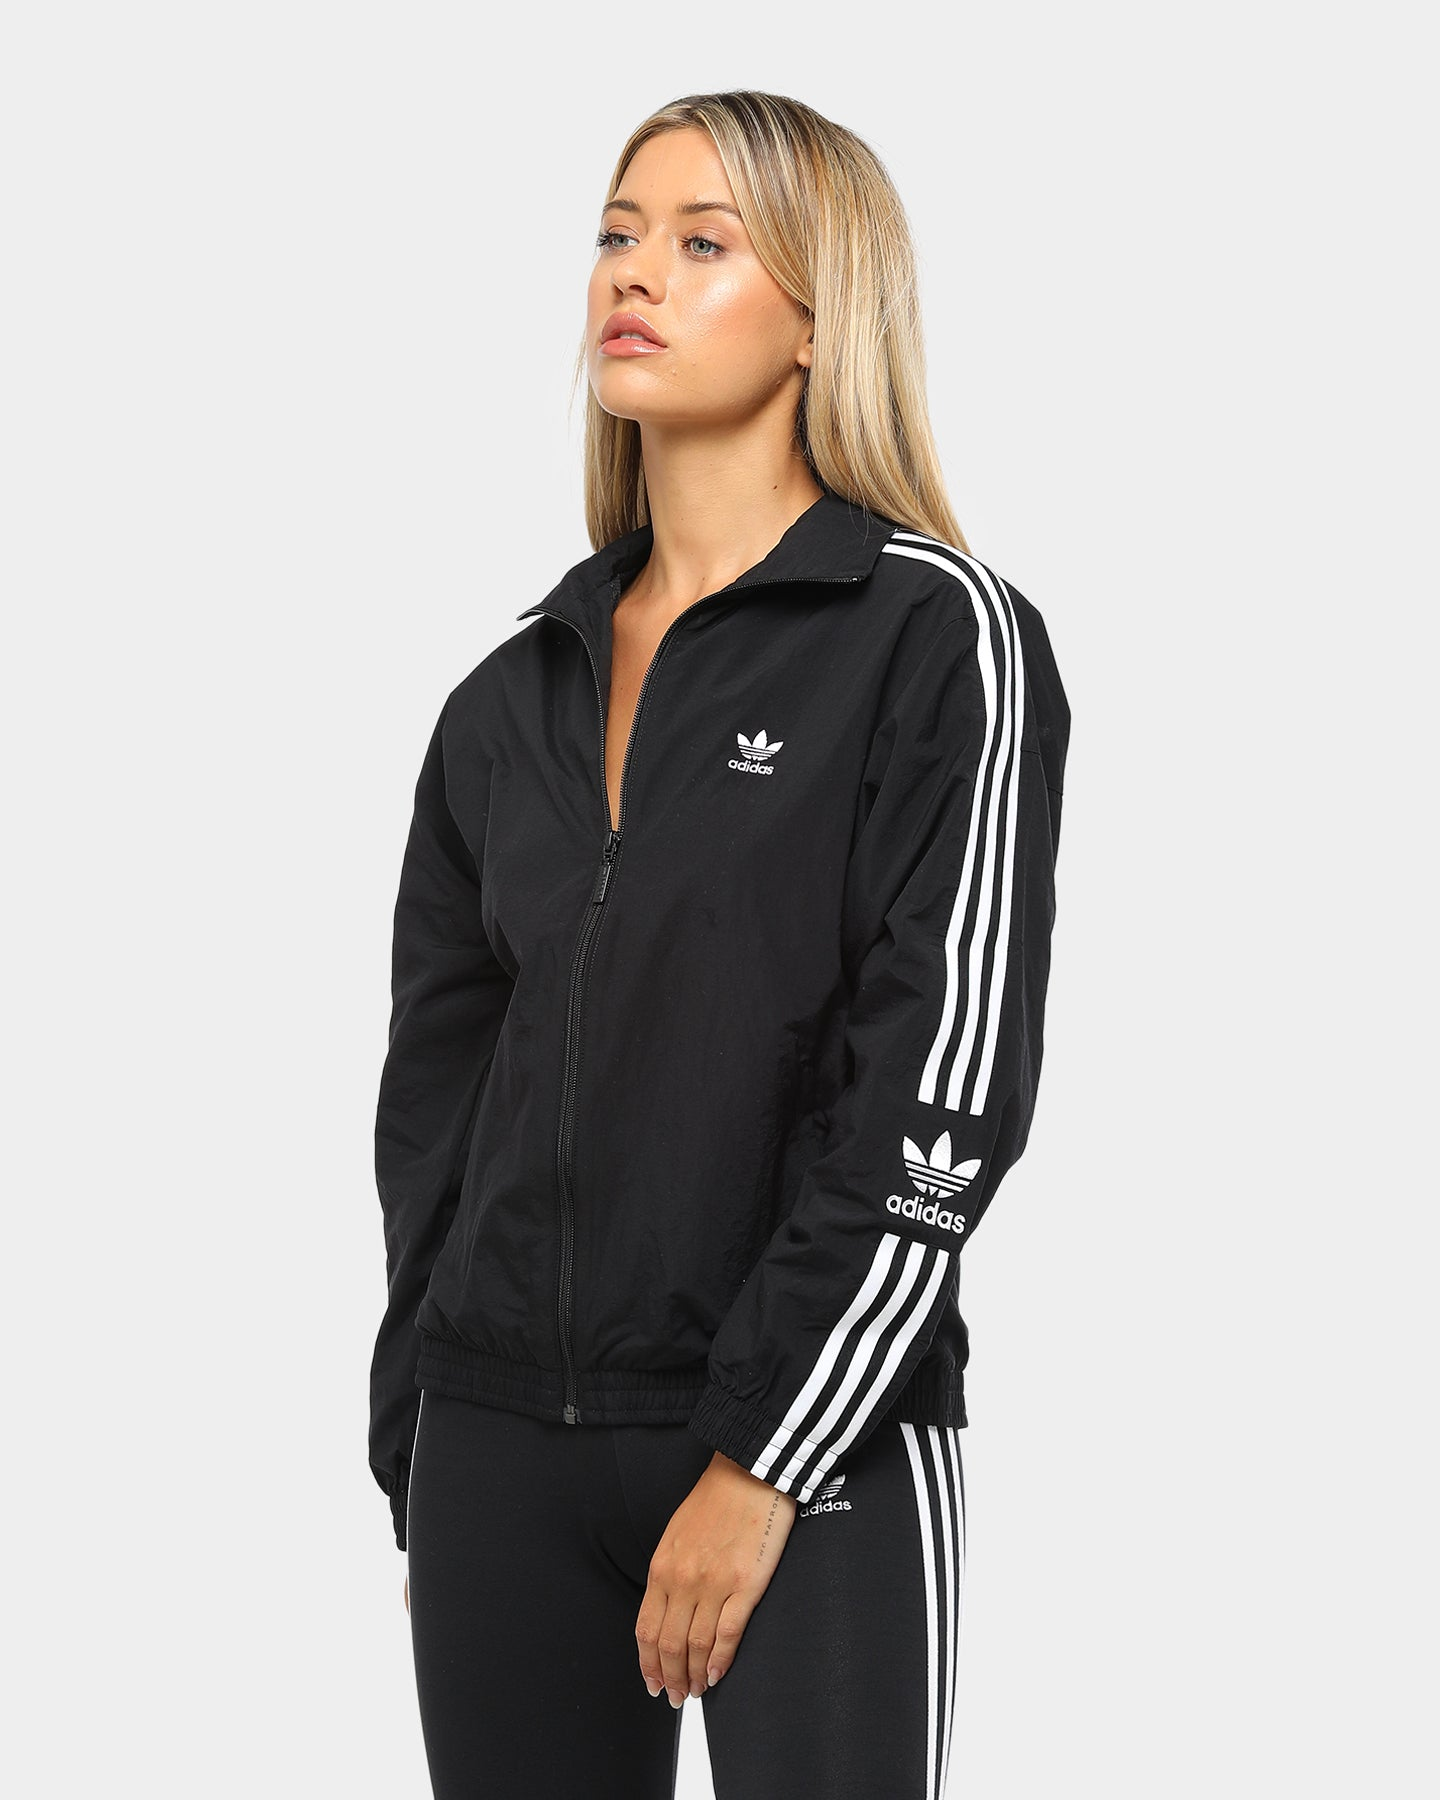 adidas with collar women's jackets, compare prices and buy